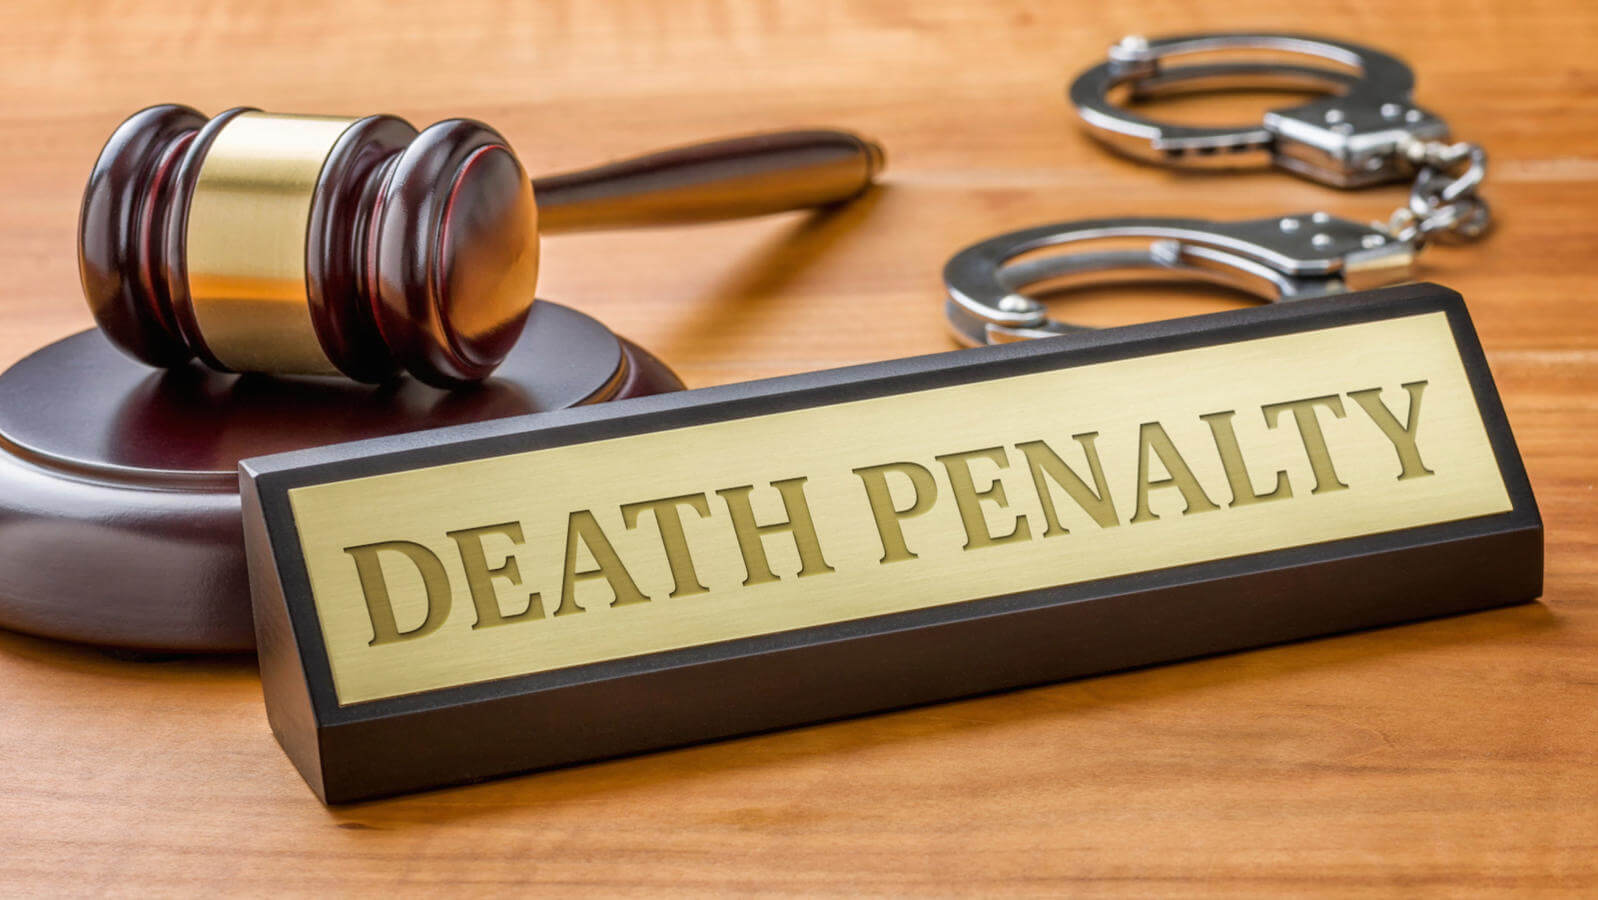 Should Capital Punishment be Justified?